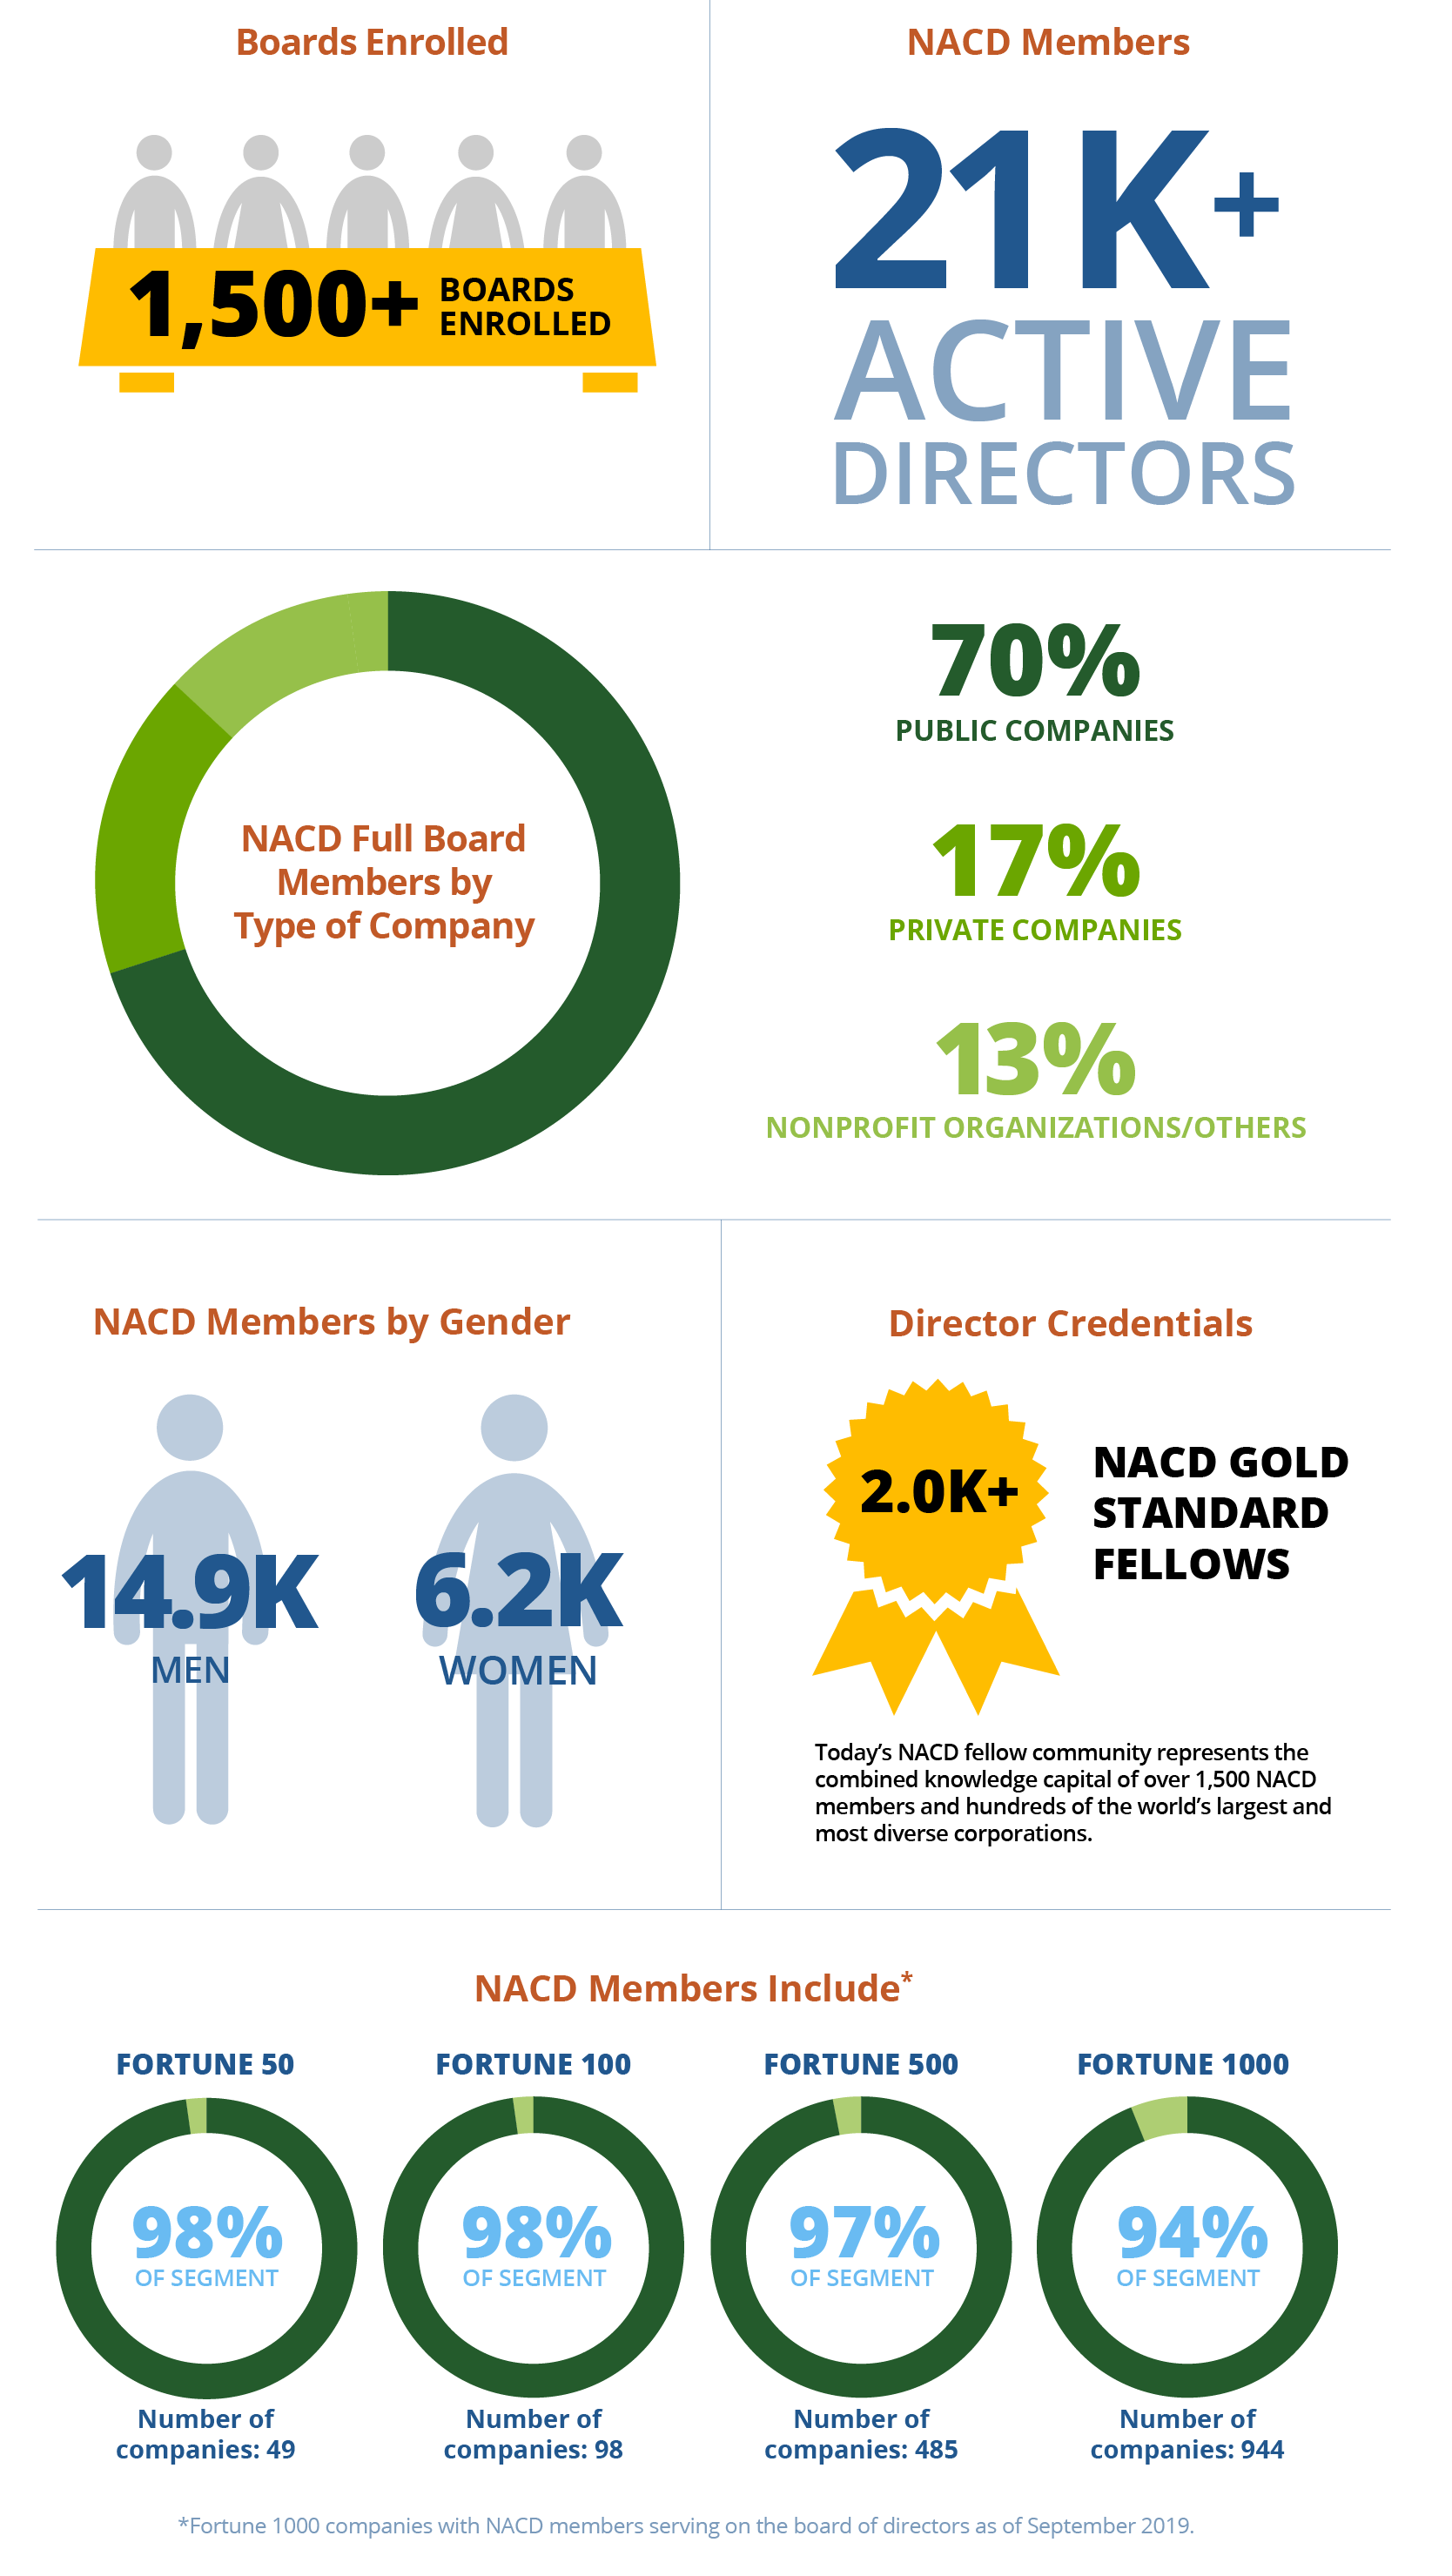 NACD Membership Demographic Image